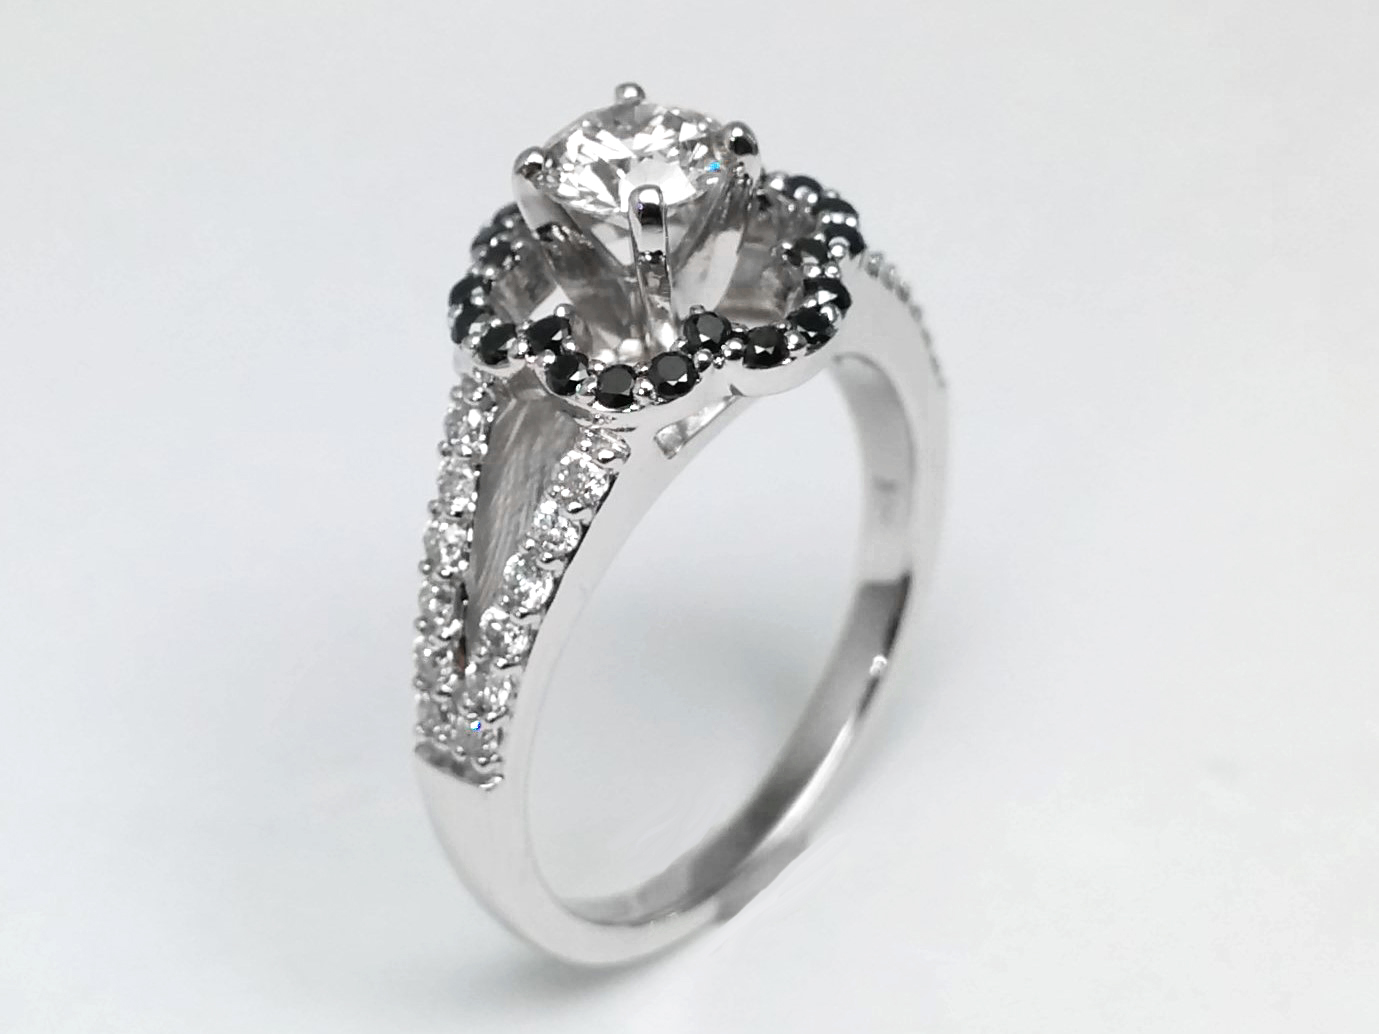 Black Diamond Floral Split Band Diamond Engagement Ring in 14k White Gold